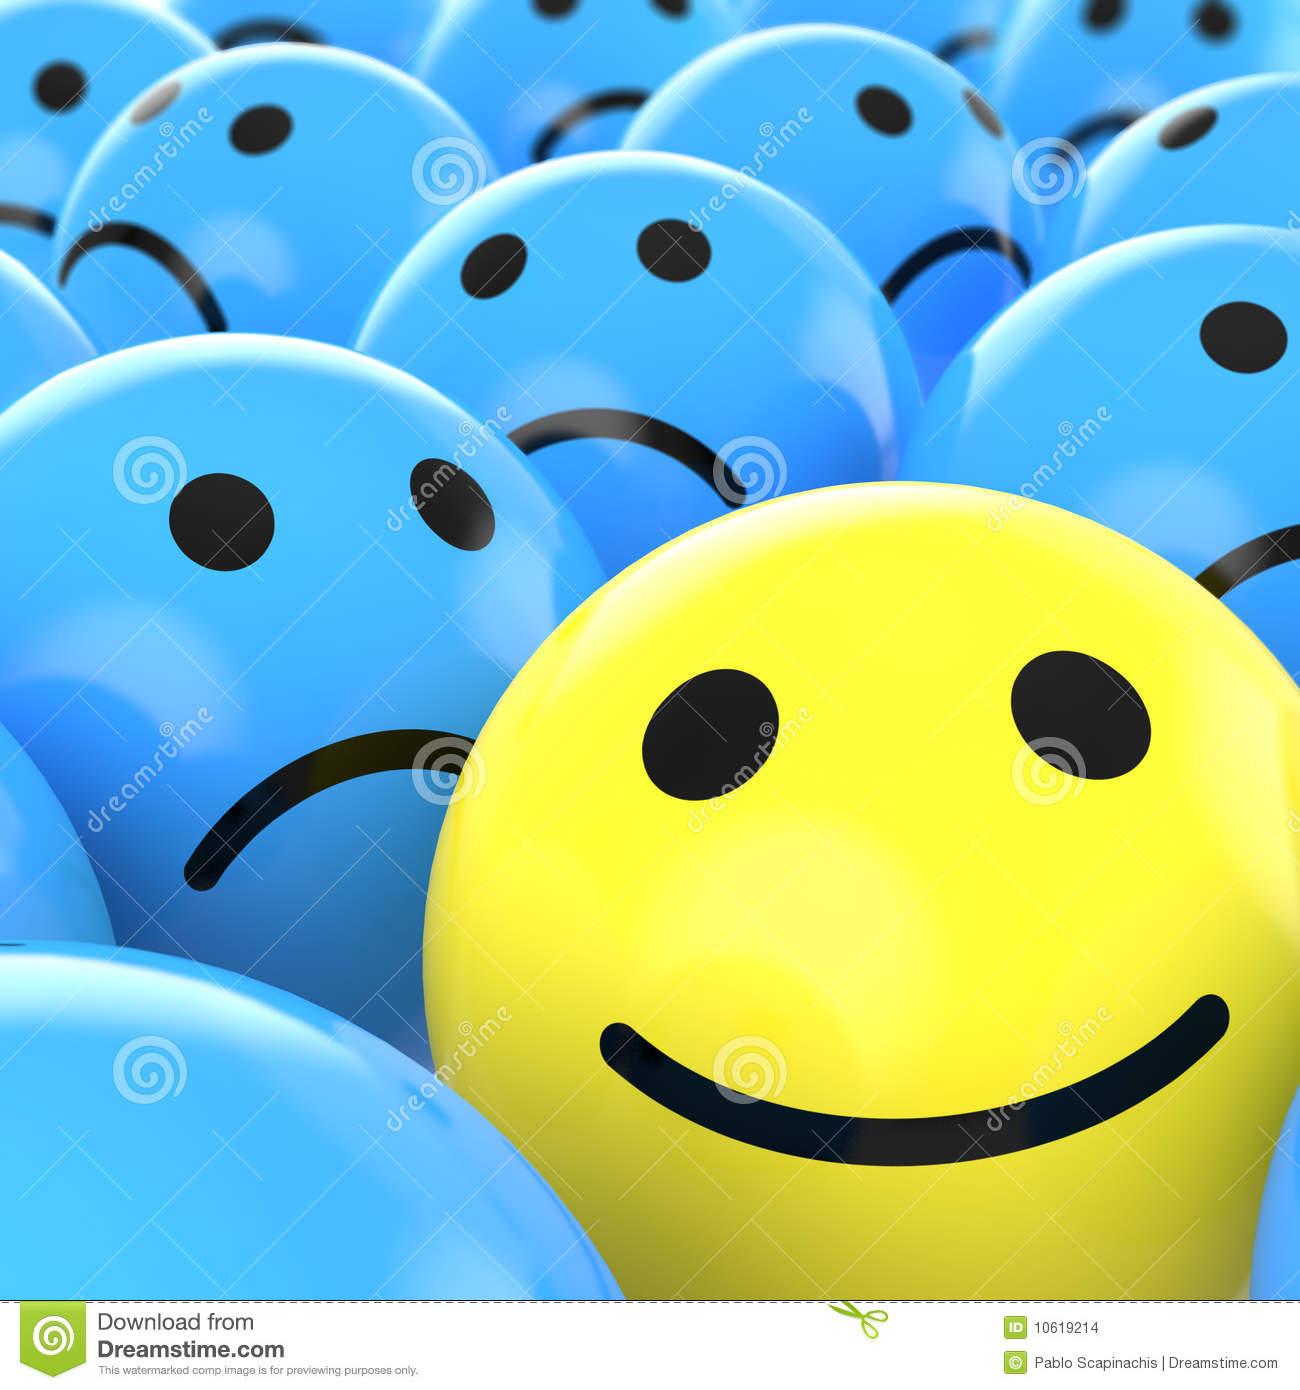 Iphone 2g Wallpaper For Iphone X Close Up Happy Smiley Beteen Sad Stock Illustration